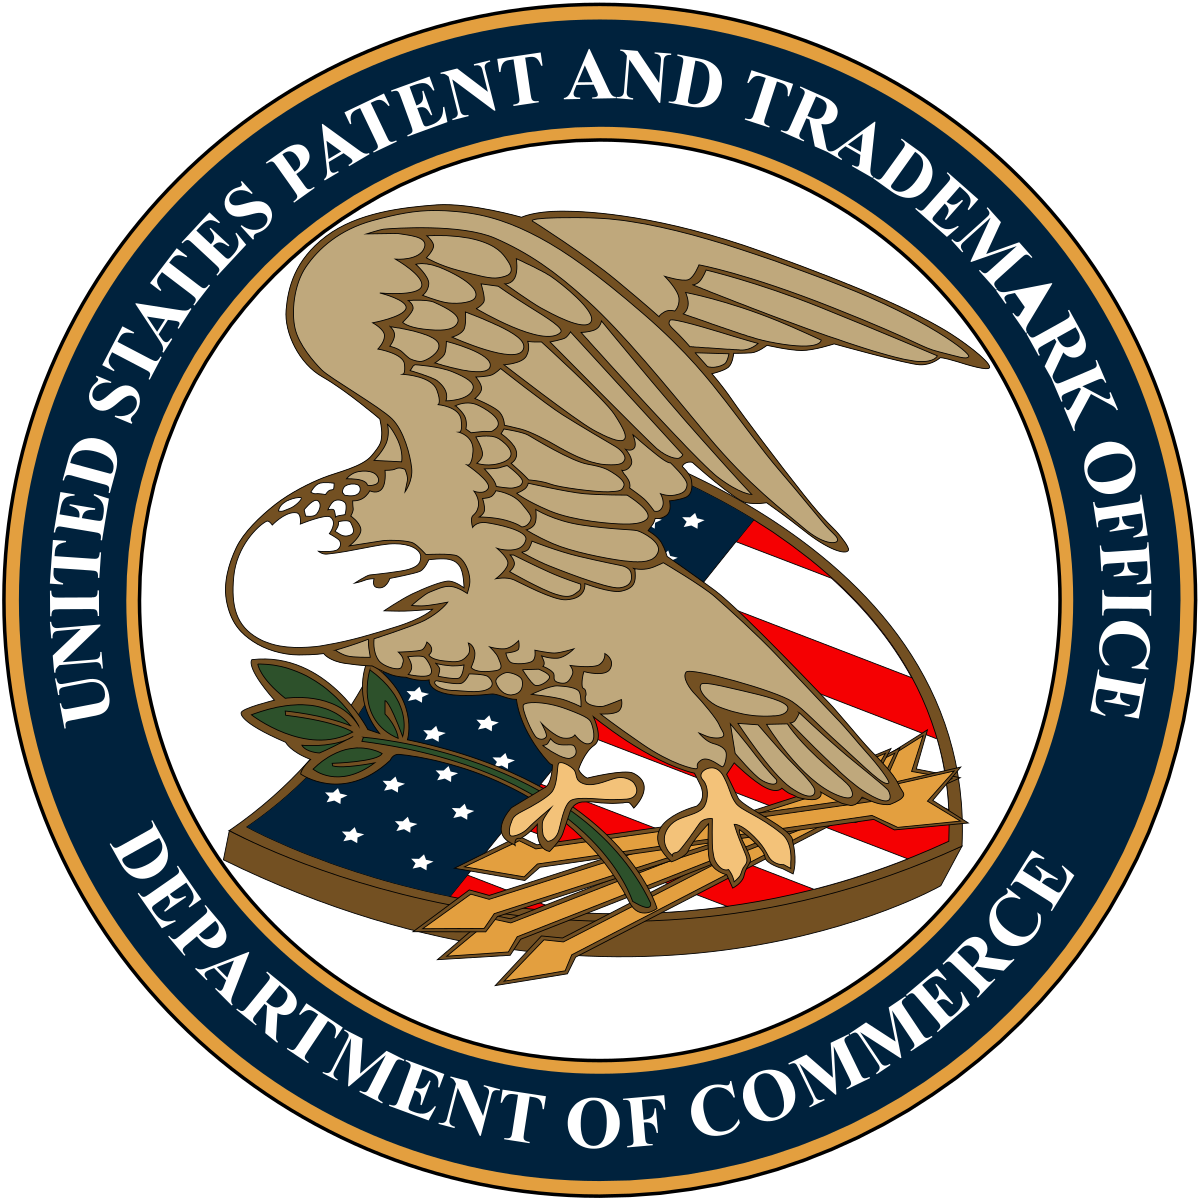 US Trademark Office